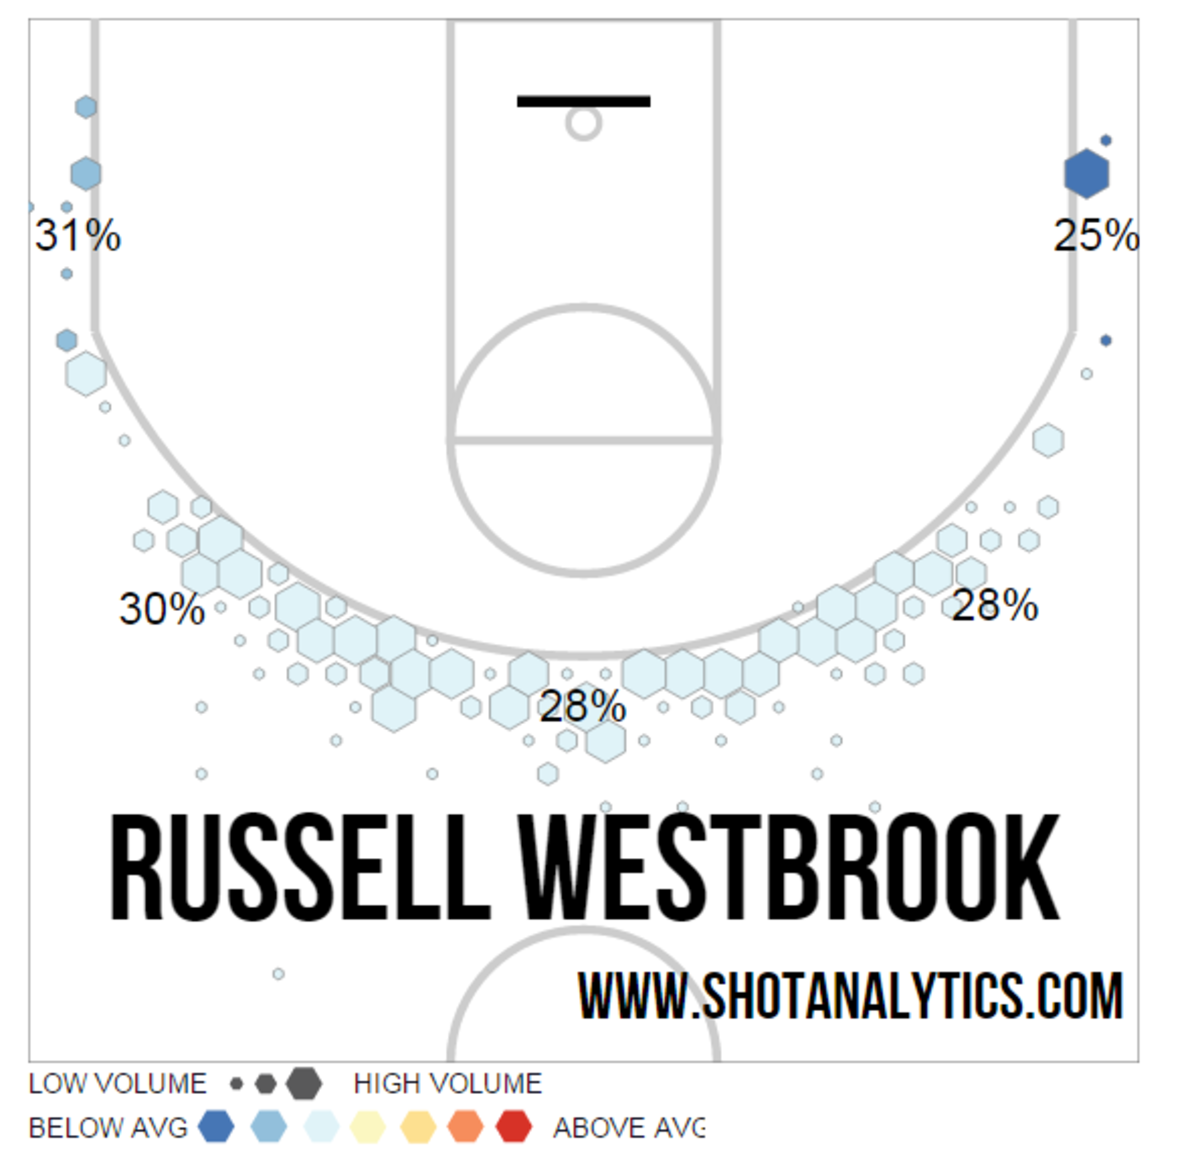 Russell Westbrook 3-point shots